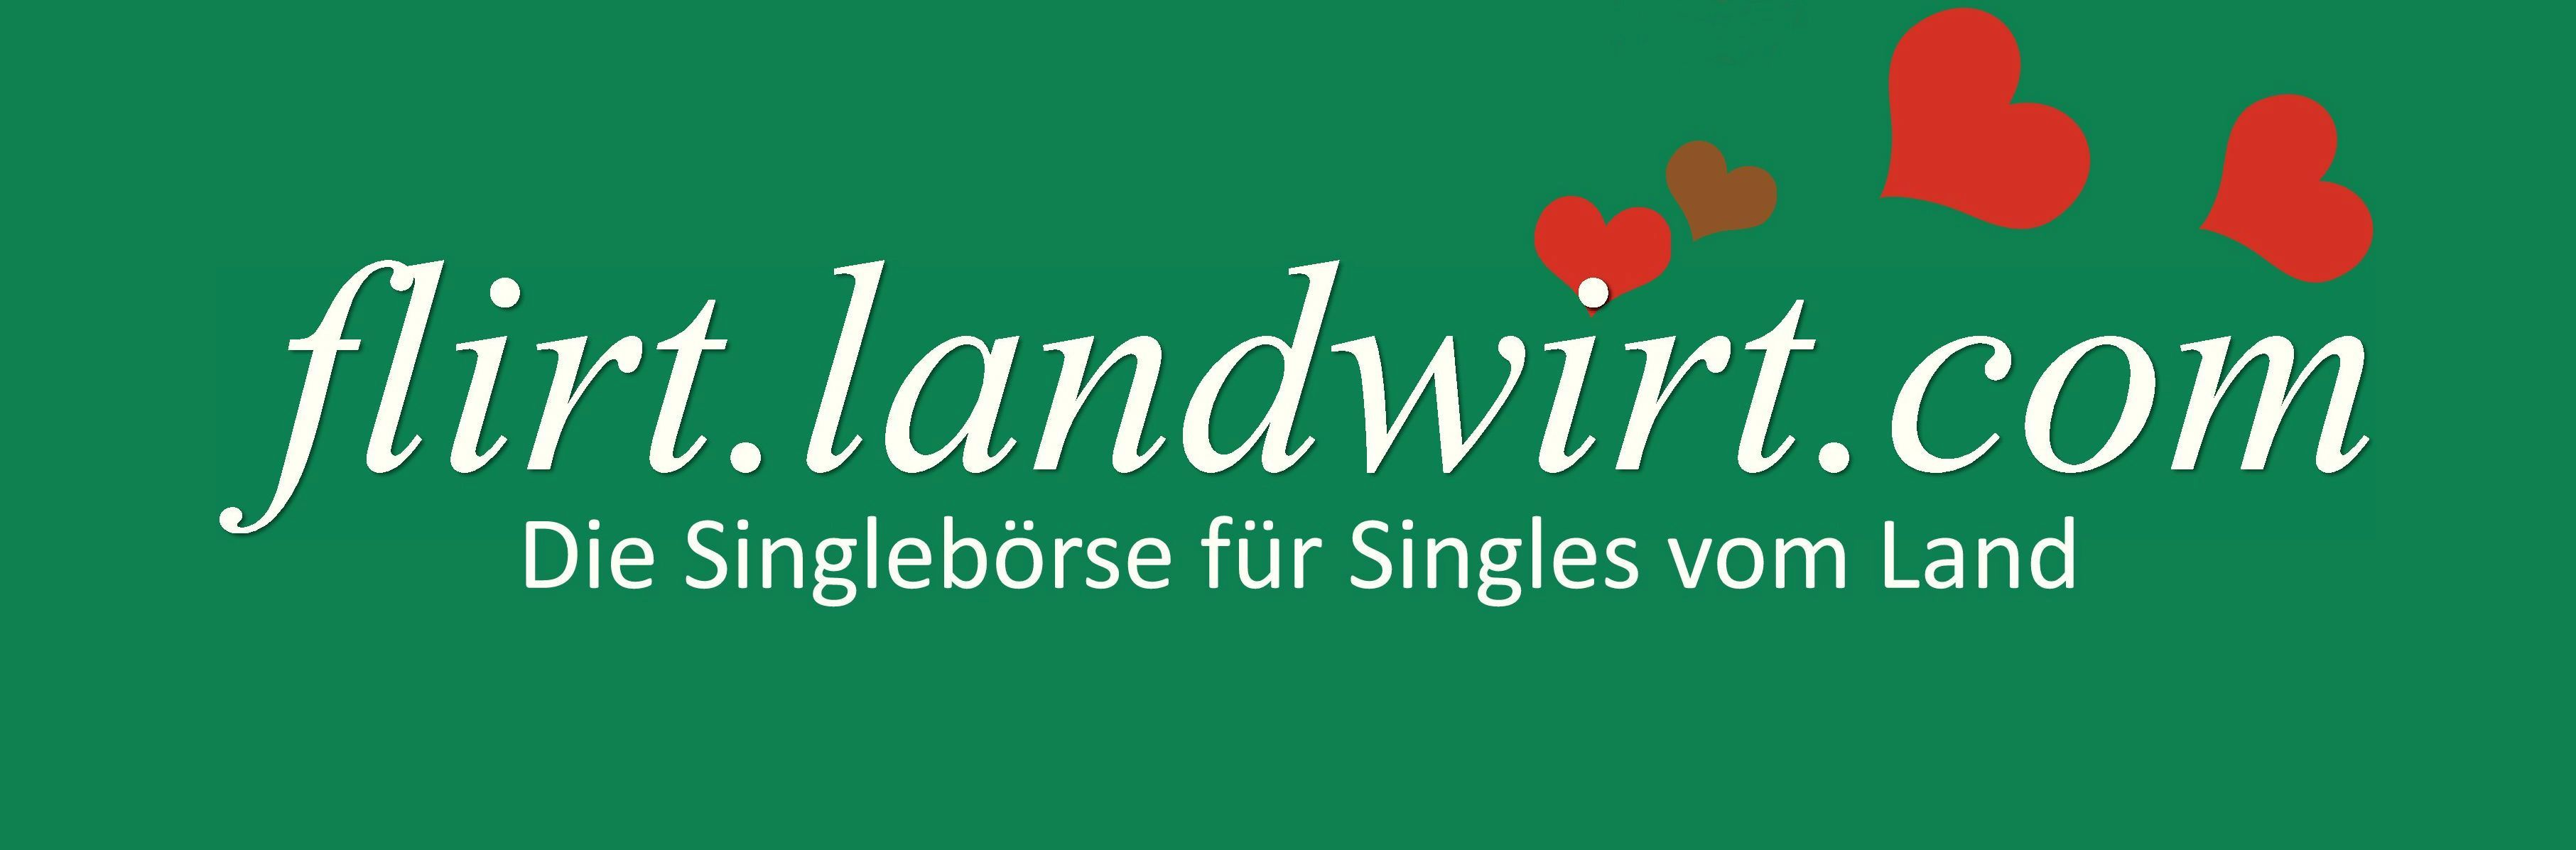 Sex anzeigen mnster, Single flirt in vasoldsberg